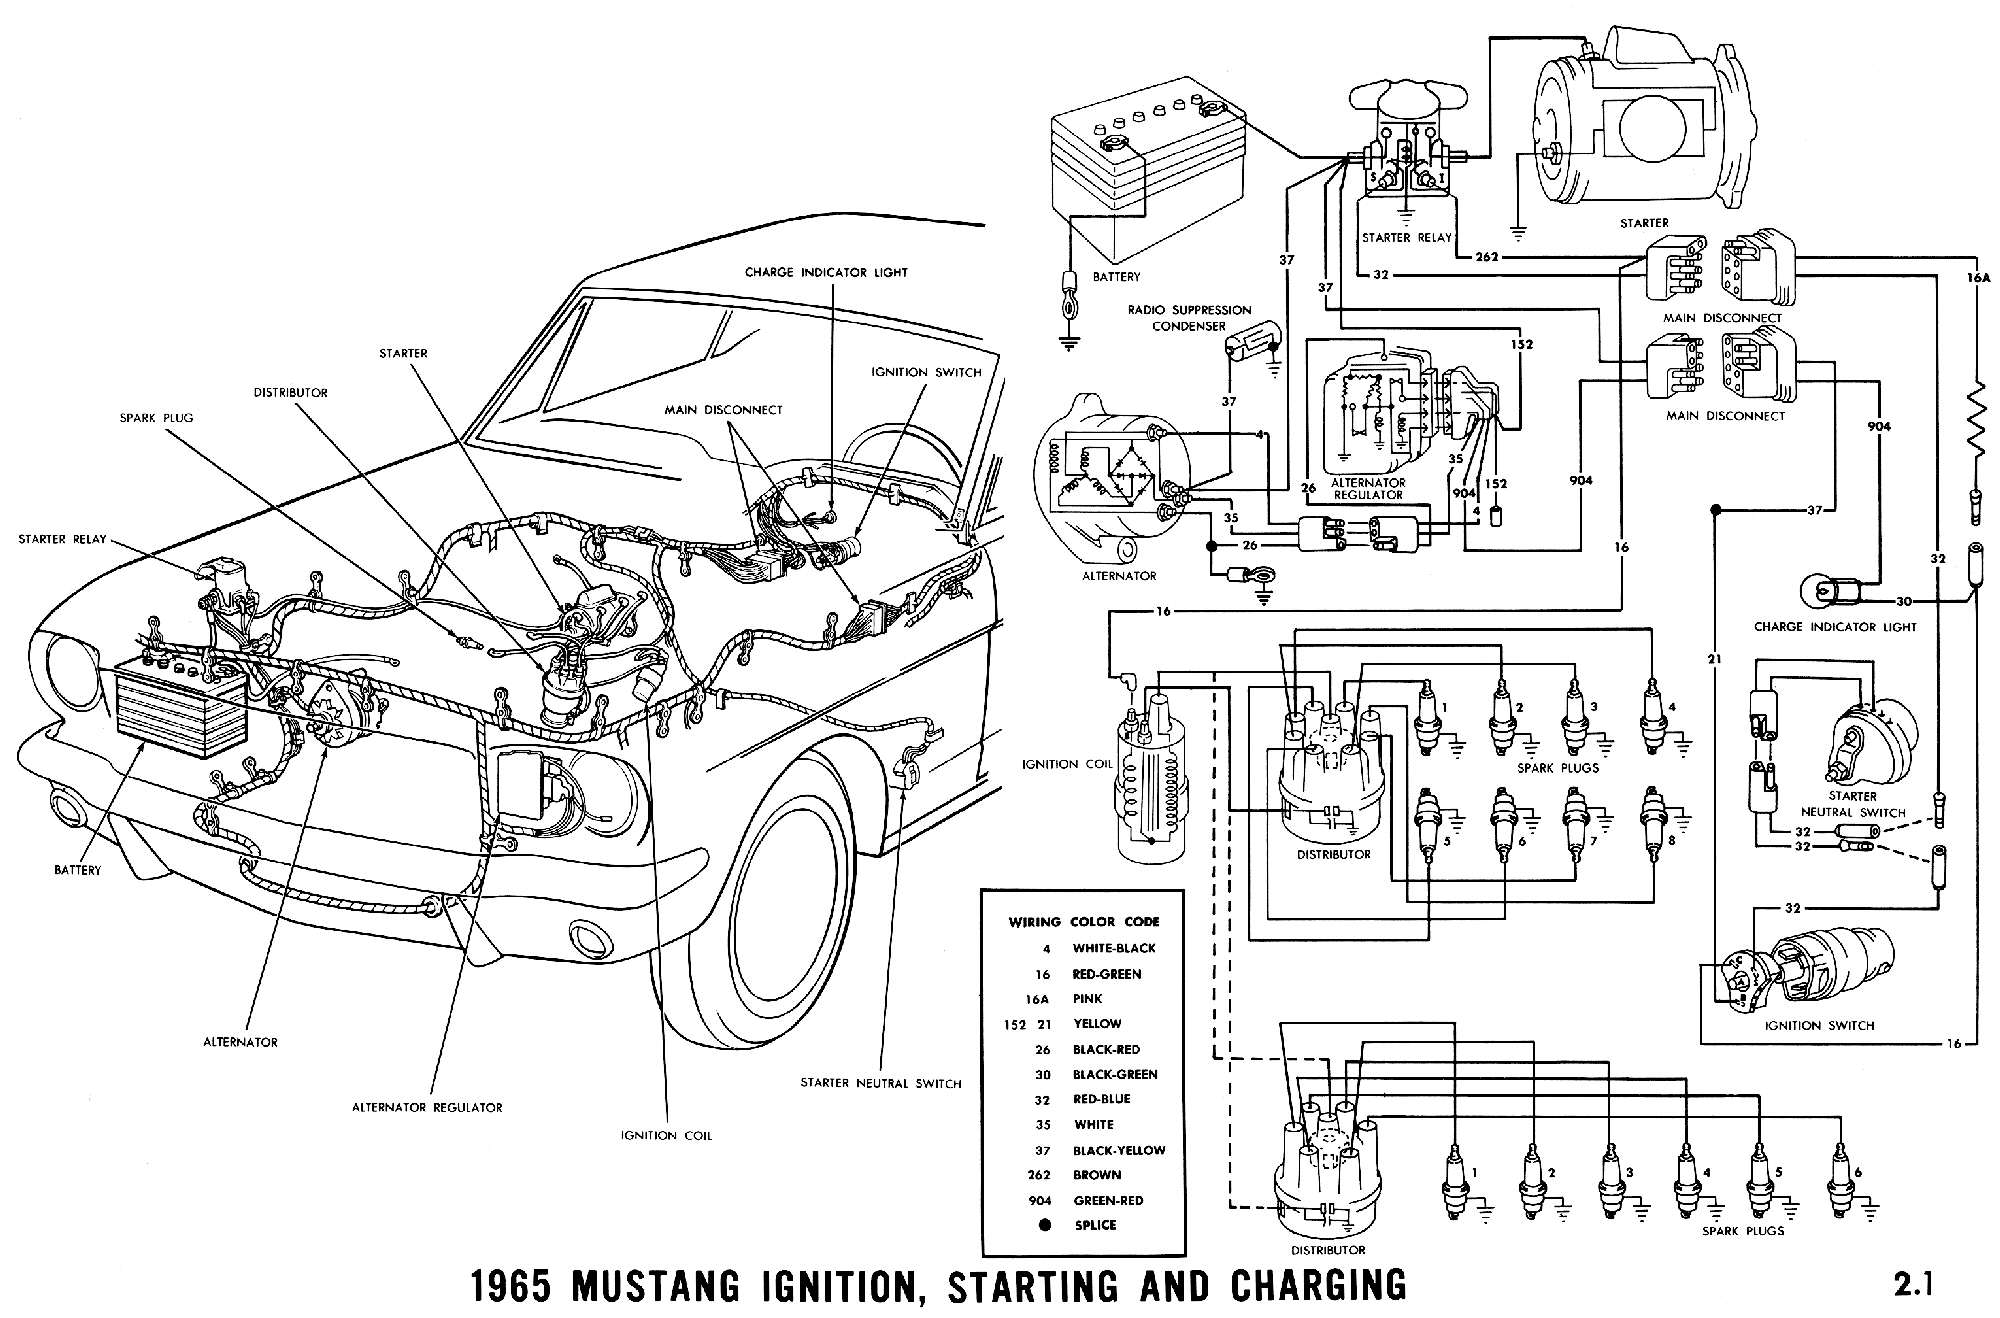 1965c 1965 mustang wiring diagrams average joe restoration 68 mustang alternator wiring diagram at nearapp.co